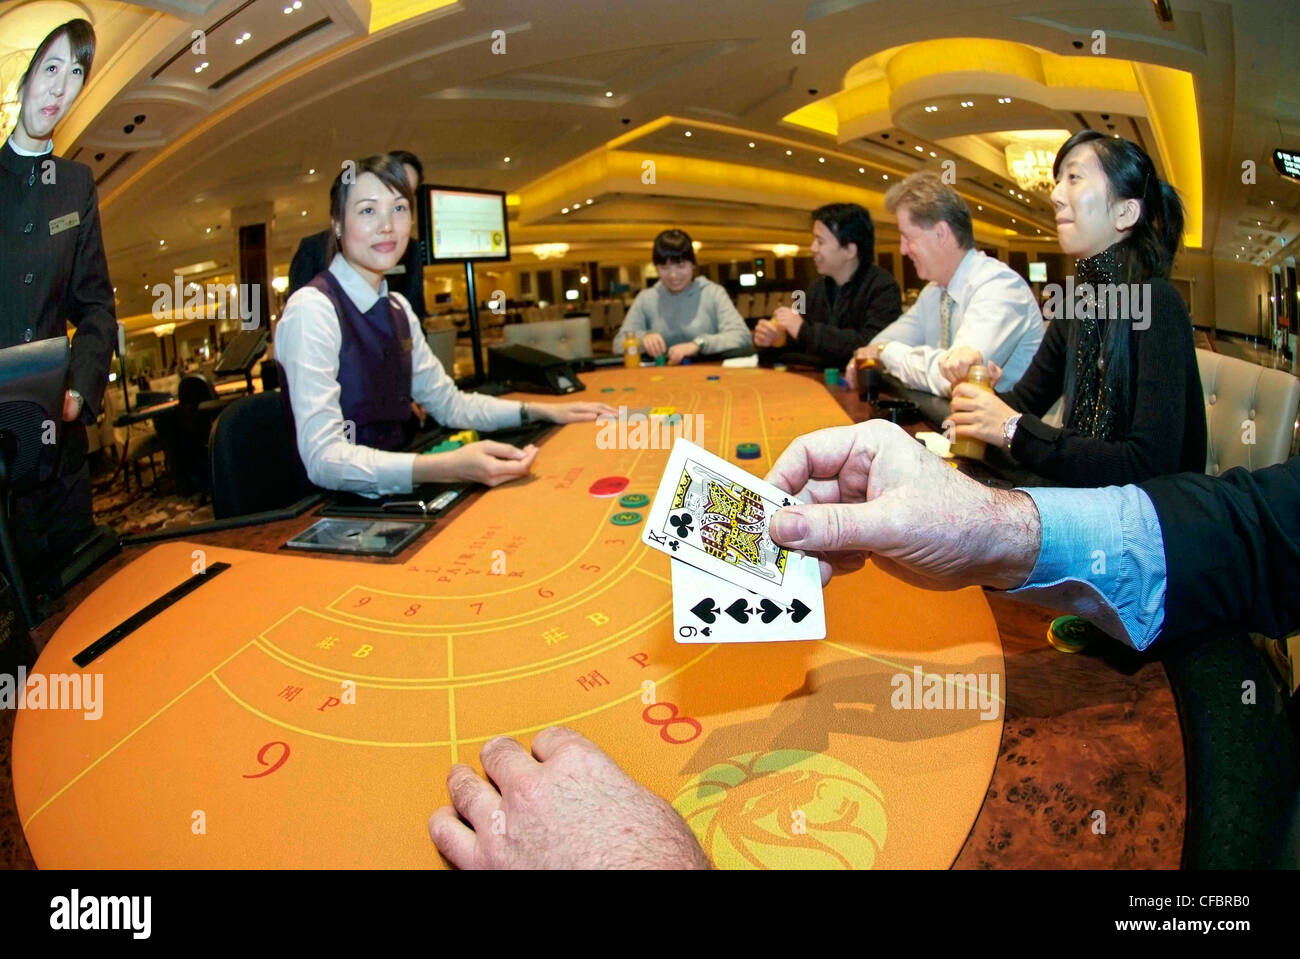 CHINA MACAU SAR MGM Grand Casino - Gambling. Gaming table ** taken with the  approval of MGM Management** Stock Photo - Alamy